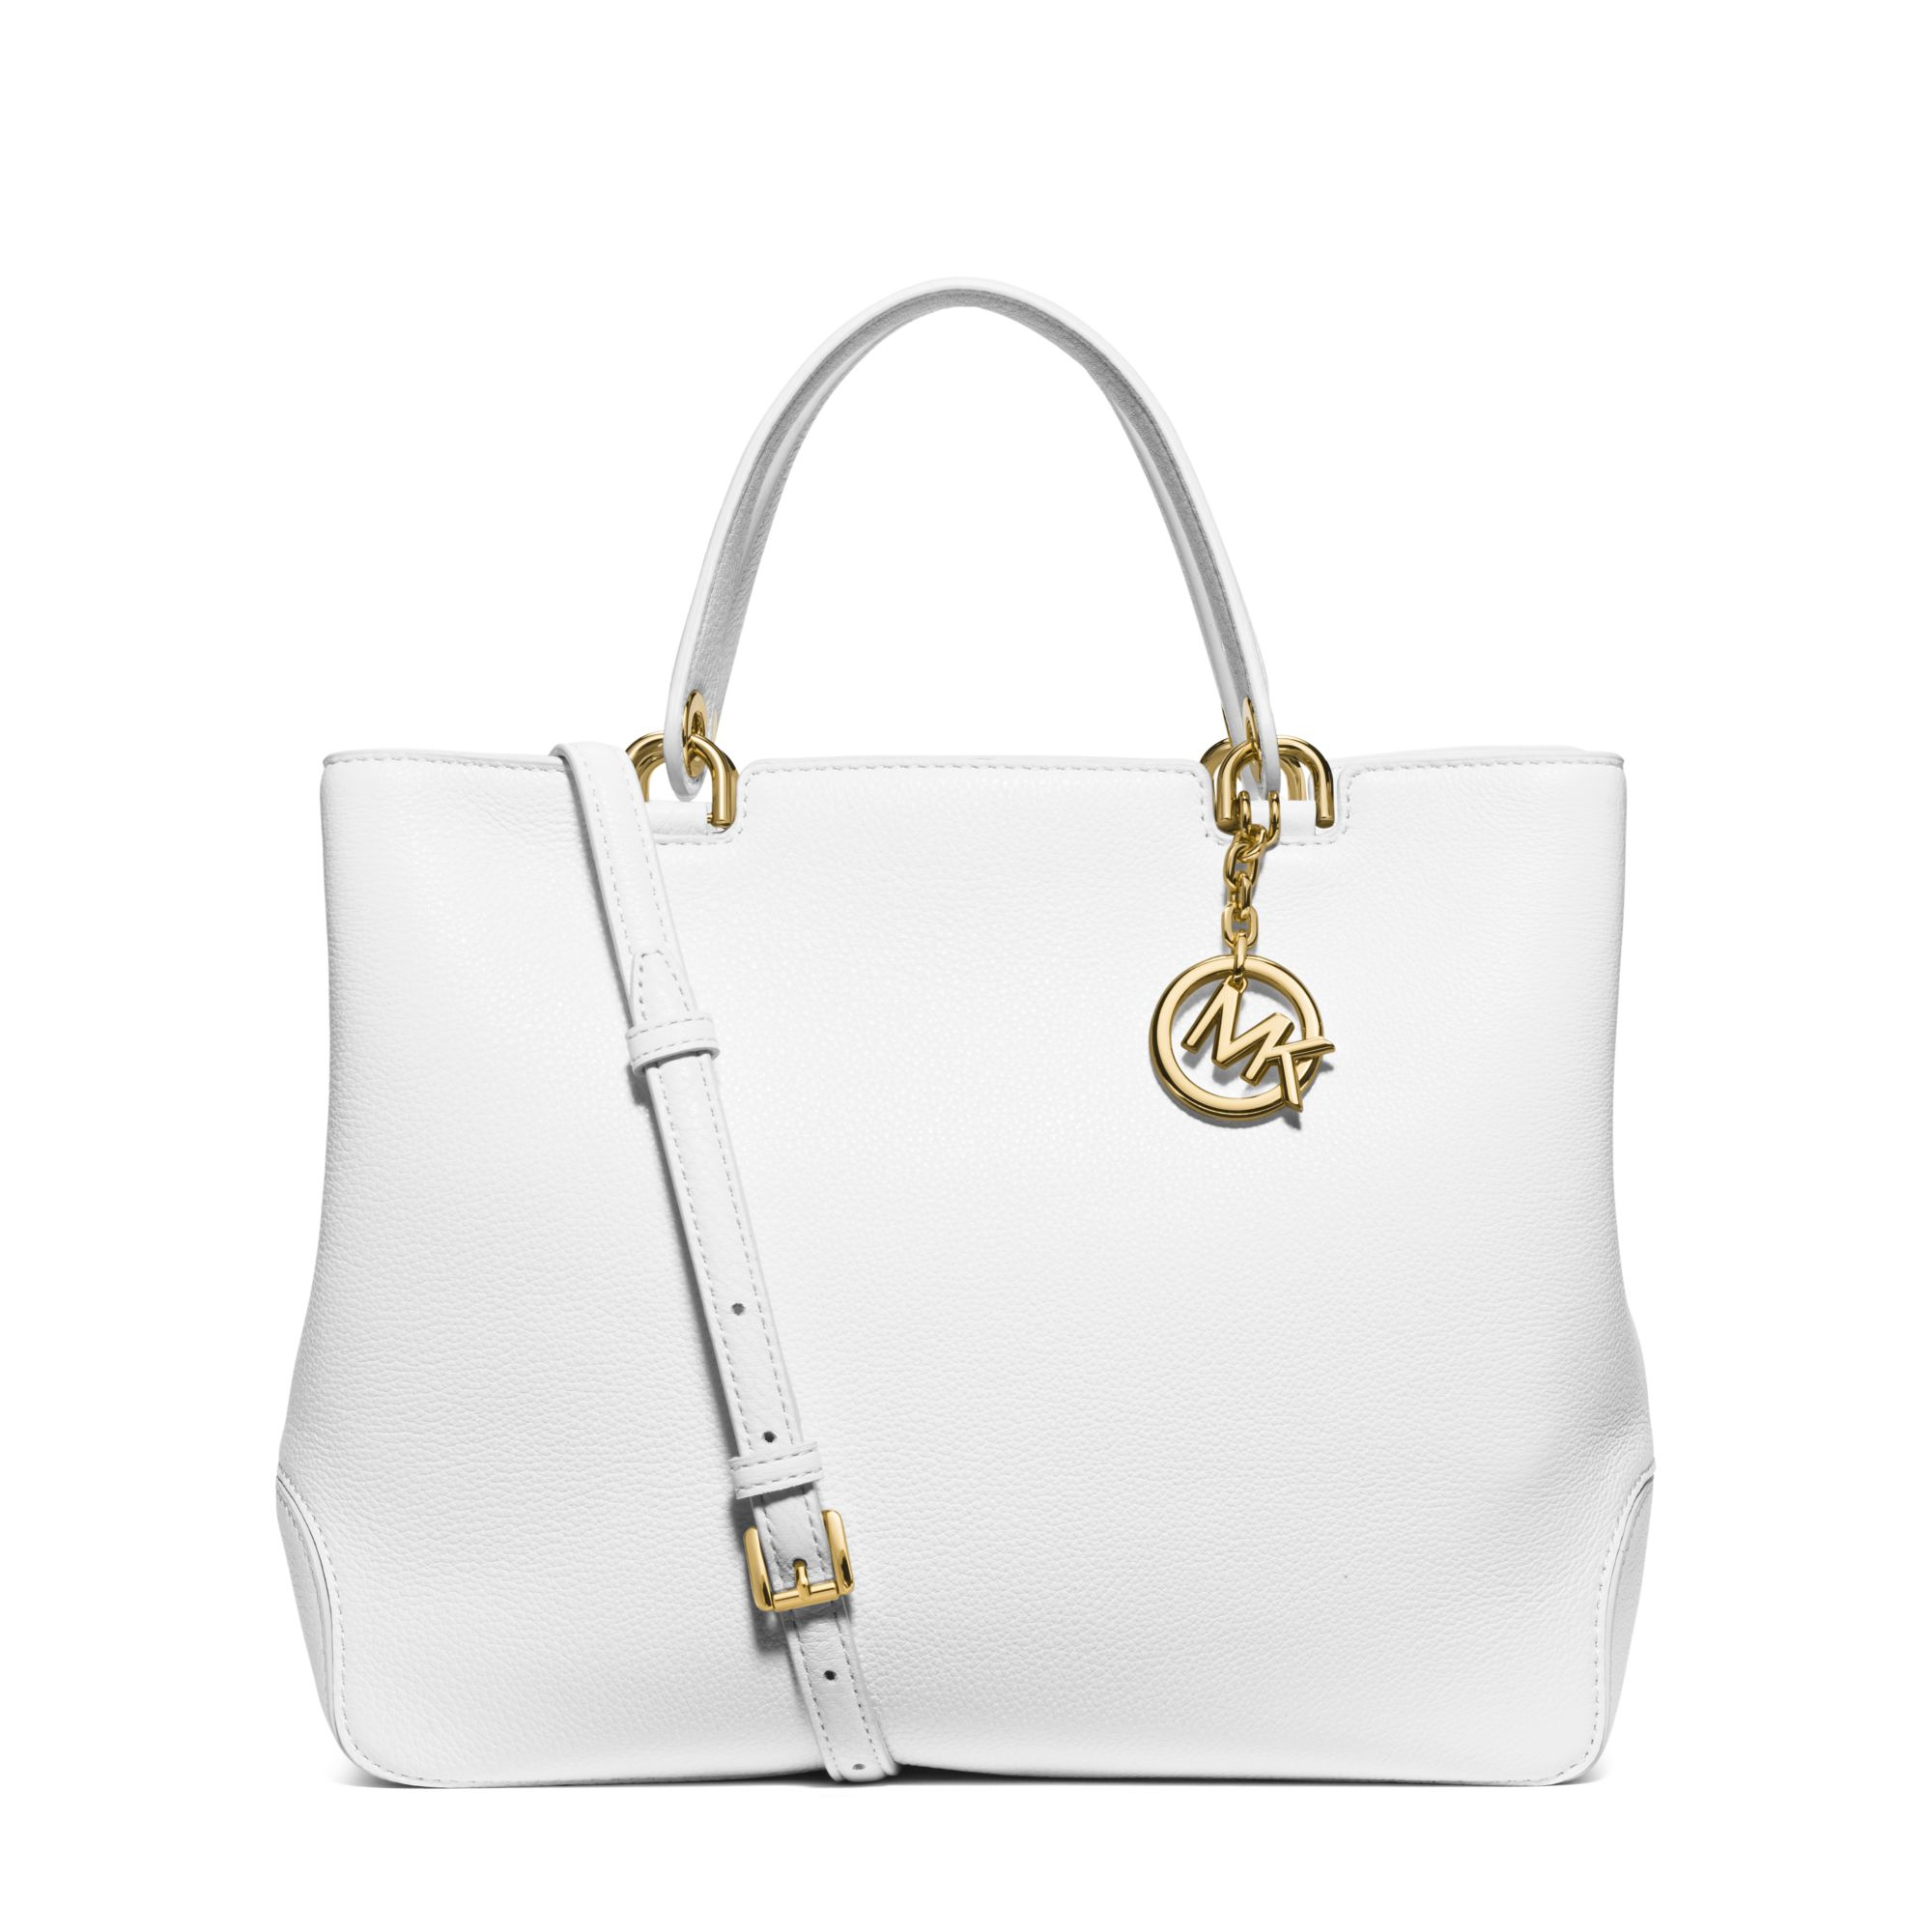 83f39201df6e ... inexpensive lyst michael kors anabelle large leather tote in white  c0bd6 b0920